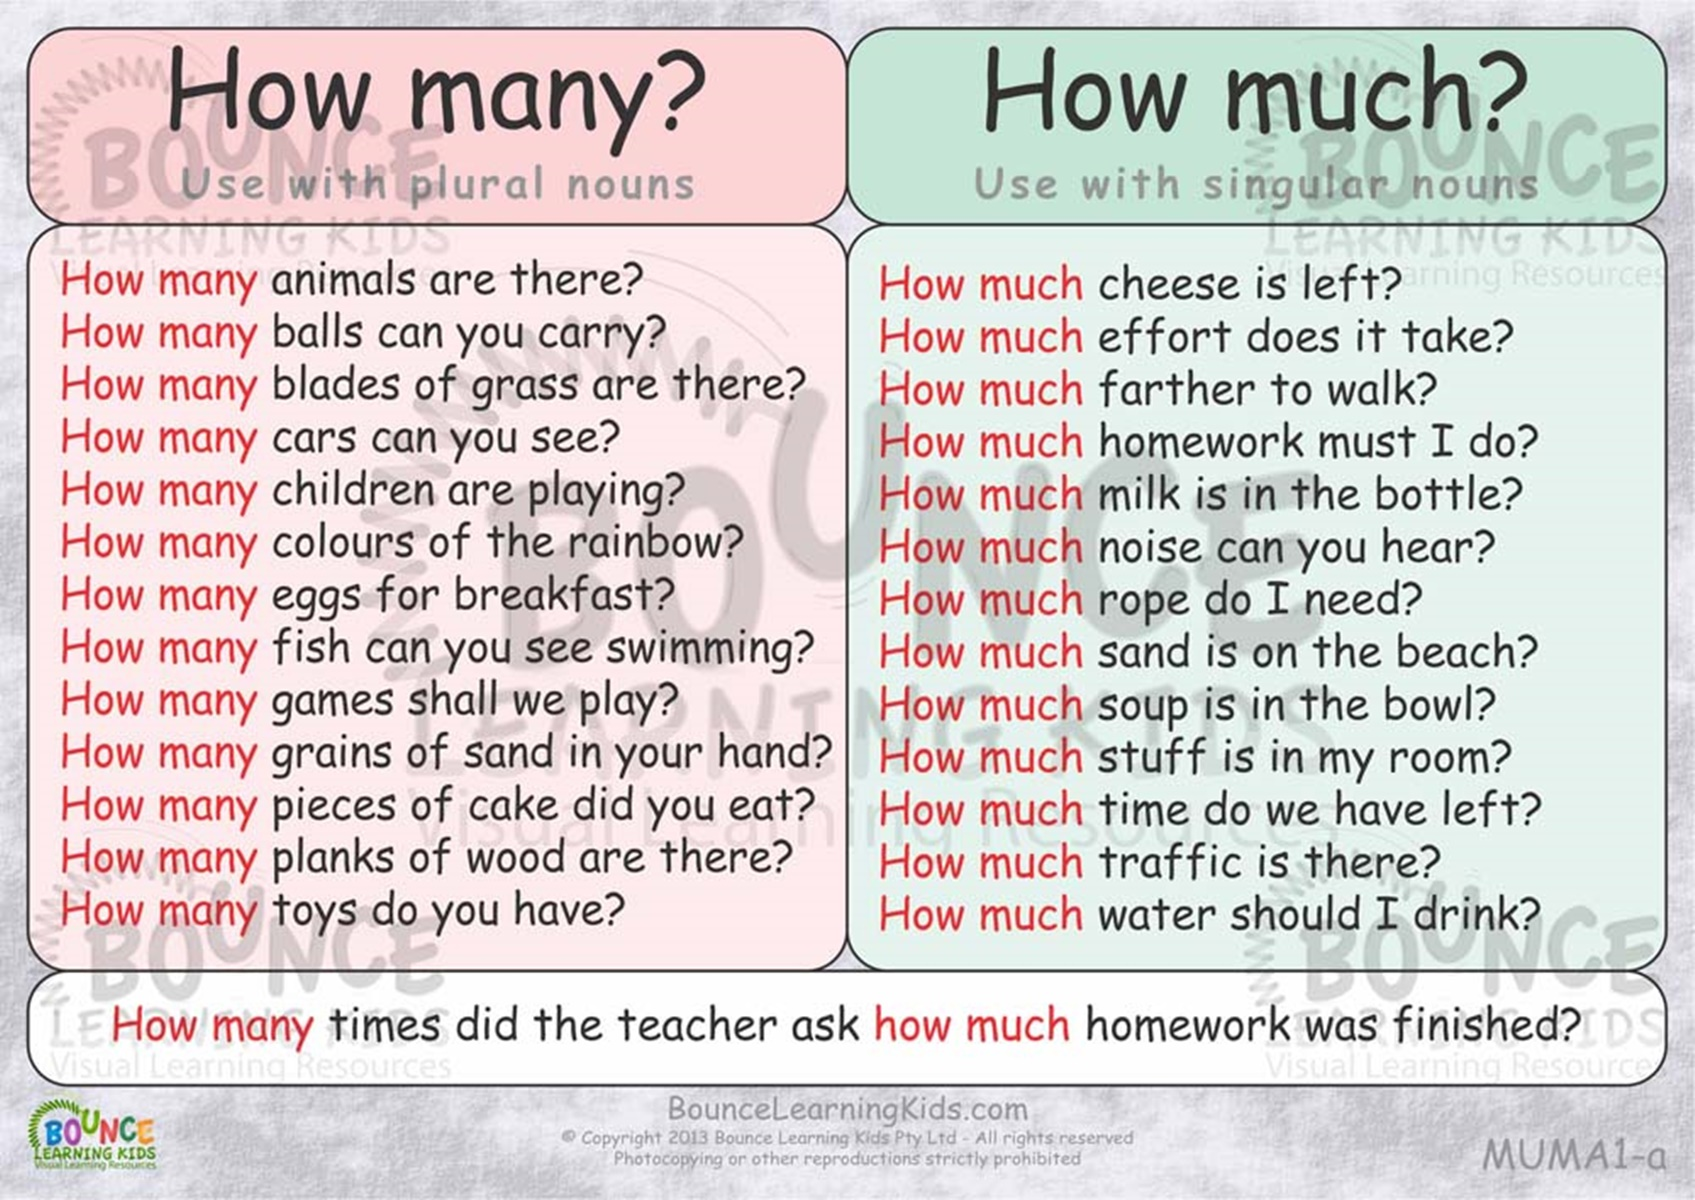 Much Vs Many Worksheet | Printable Worksheets and Activities ... English Worksheets Some Any Much Many on wedding guest list worksheets, i and me worksheets, preschool phonological awareness worksheets, some any worksheets, skip counting worksheets, double negatives worksheets, have has worksheets, preschool community helpers worksheets, was were worksheets, can and may worksheets,